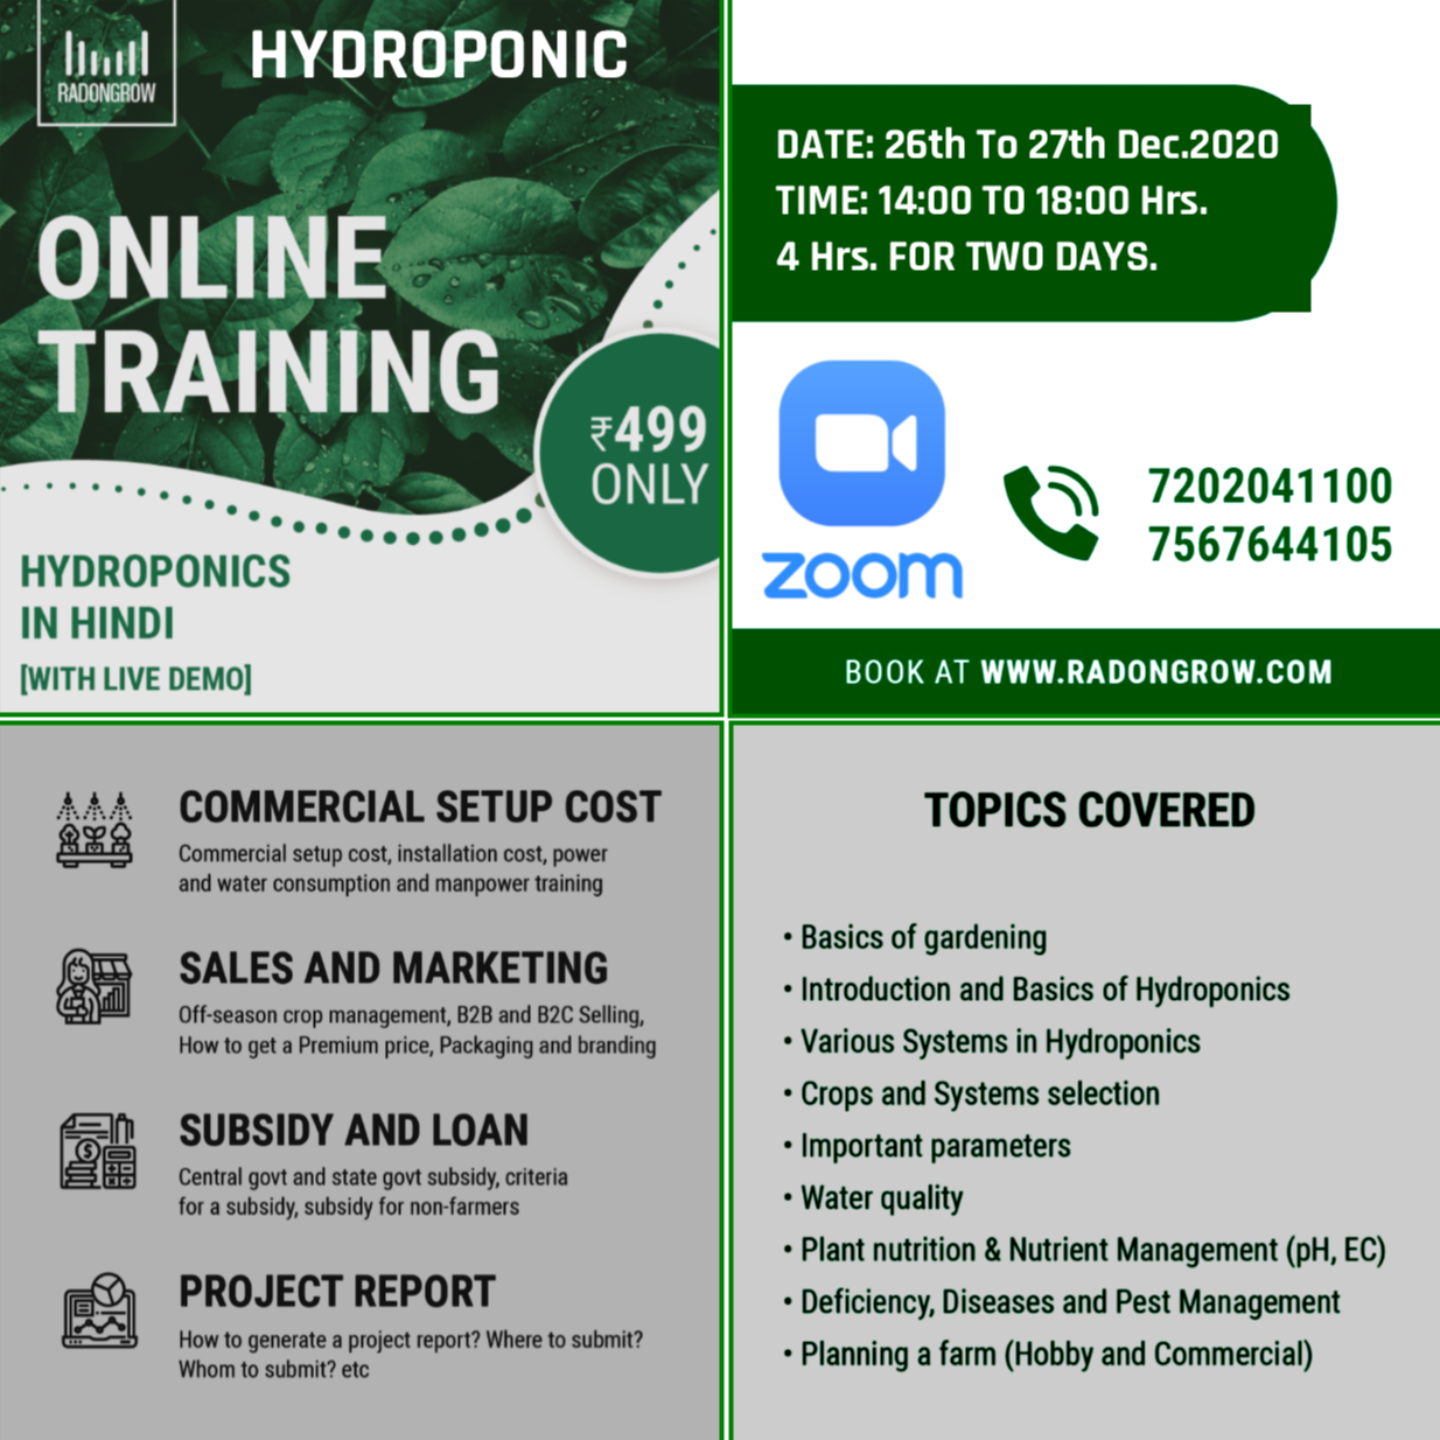 Hydroponic Training ( IN HINDI) 26, December AND 27, December 2020